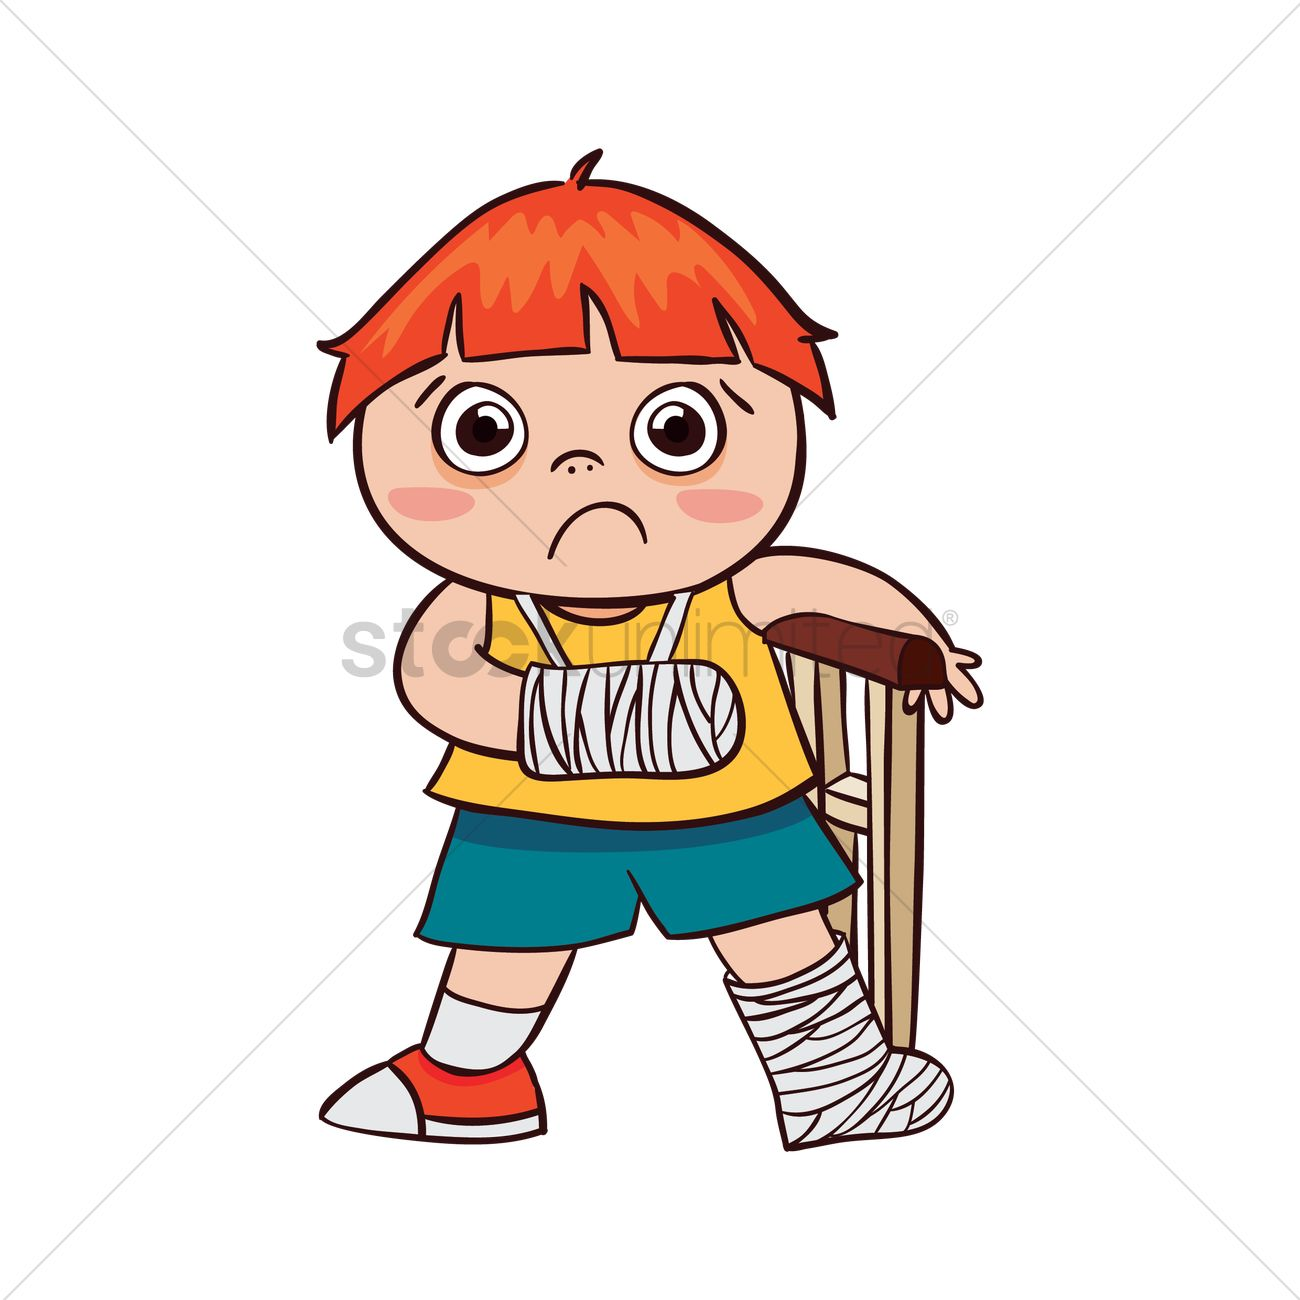 boy with broken arm and leg vector image 1956890 stockunlimited rh stockunlimited com Broken Arm Animated GIFs Broken Arm Cartoon